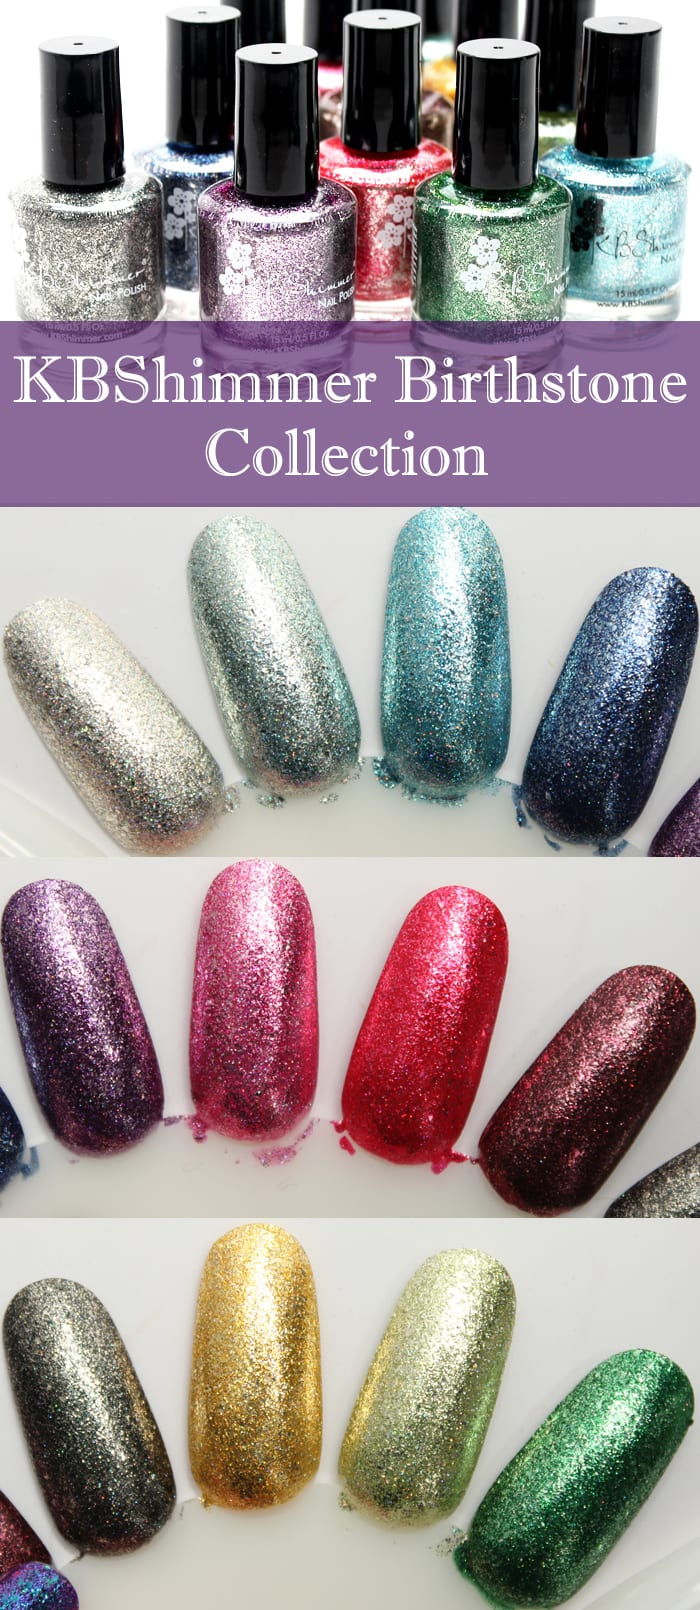 KBShimmer Birthstone Collection Swatches and Review